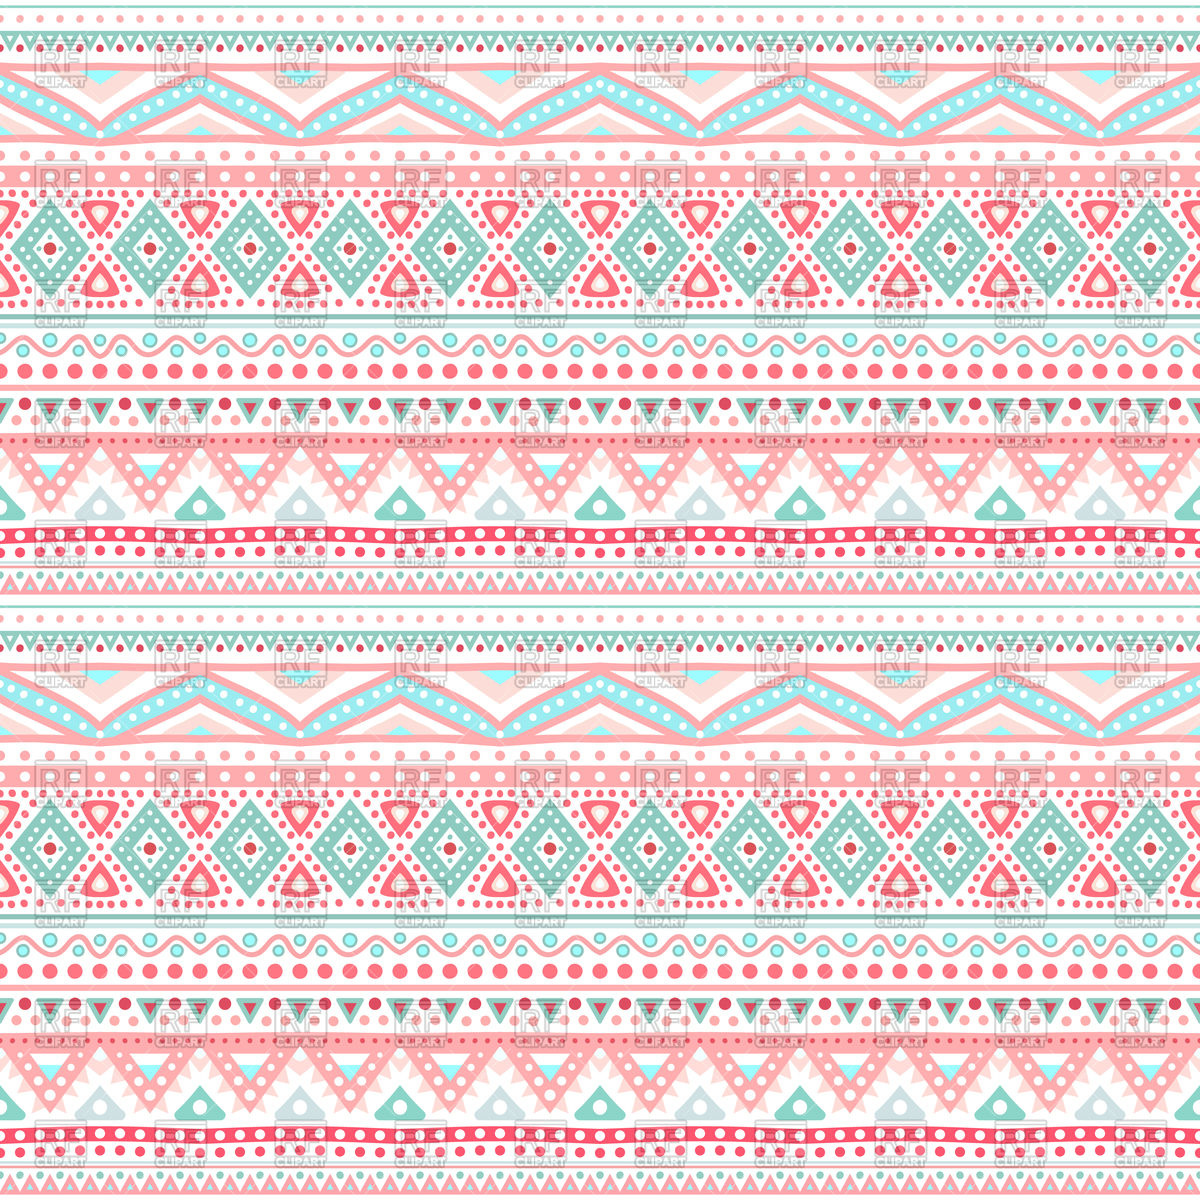 1200x1200 Tribal Ethnic Seamless Pink Pattern Vector Image Vector Artwork